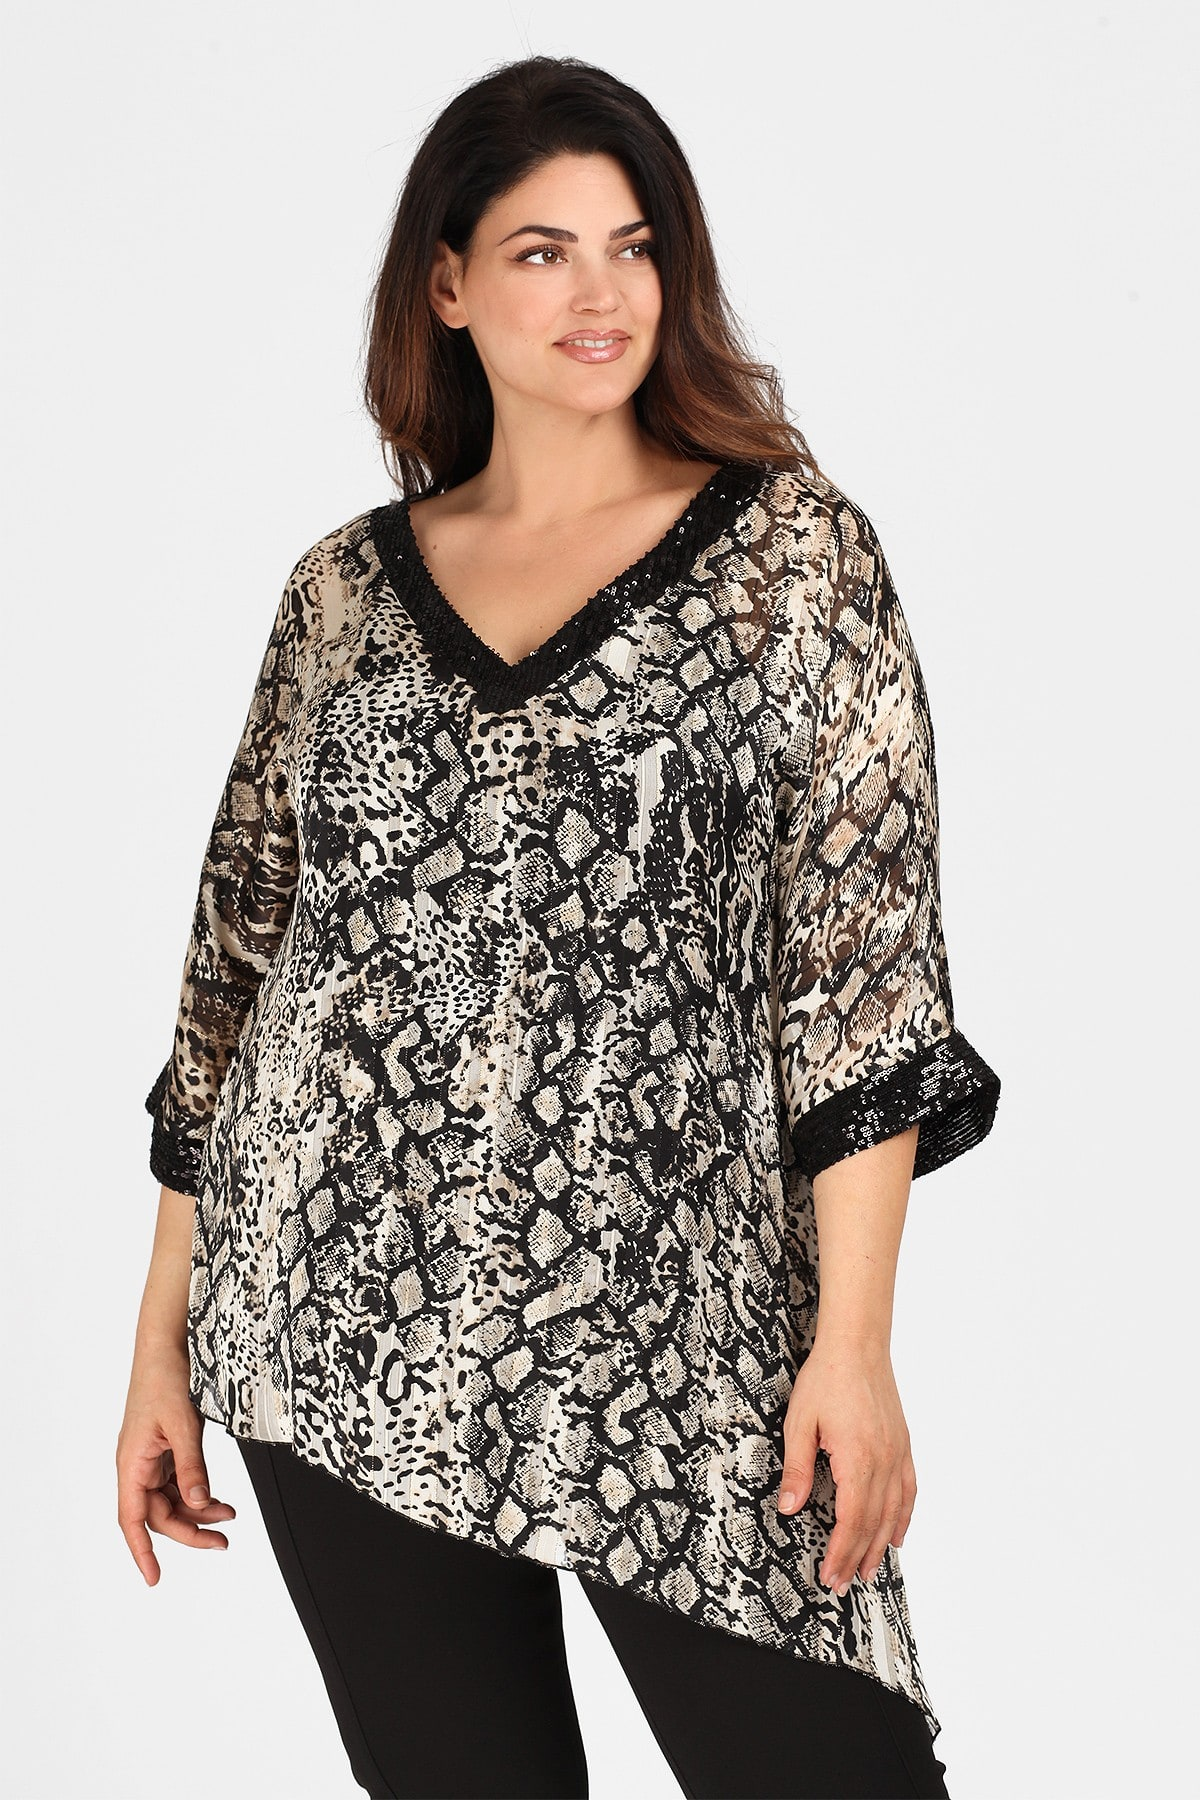 Evening leopard blouse with sequins